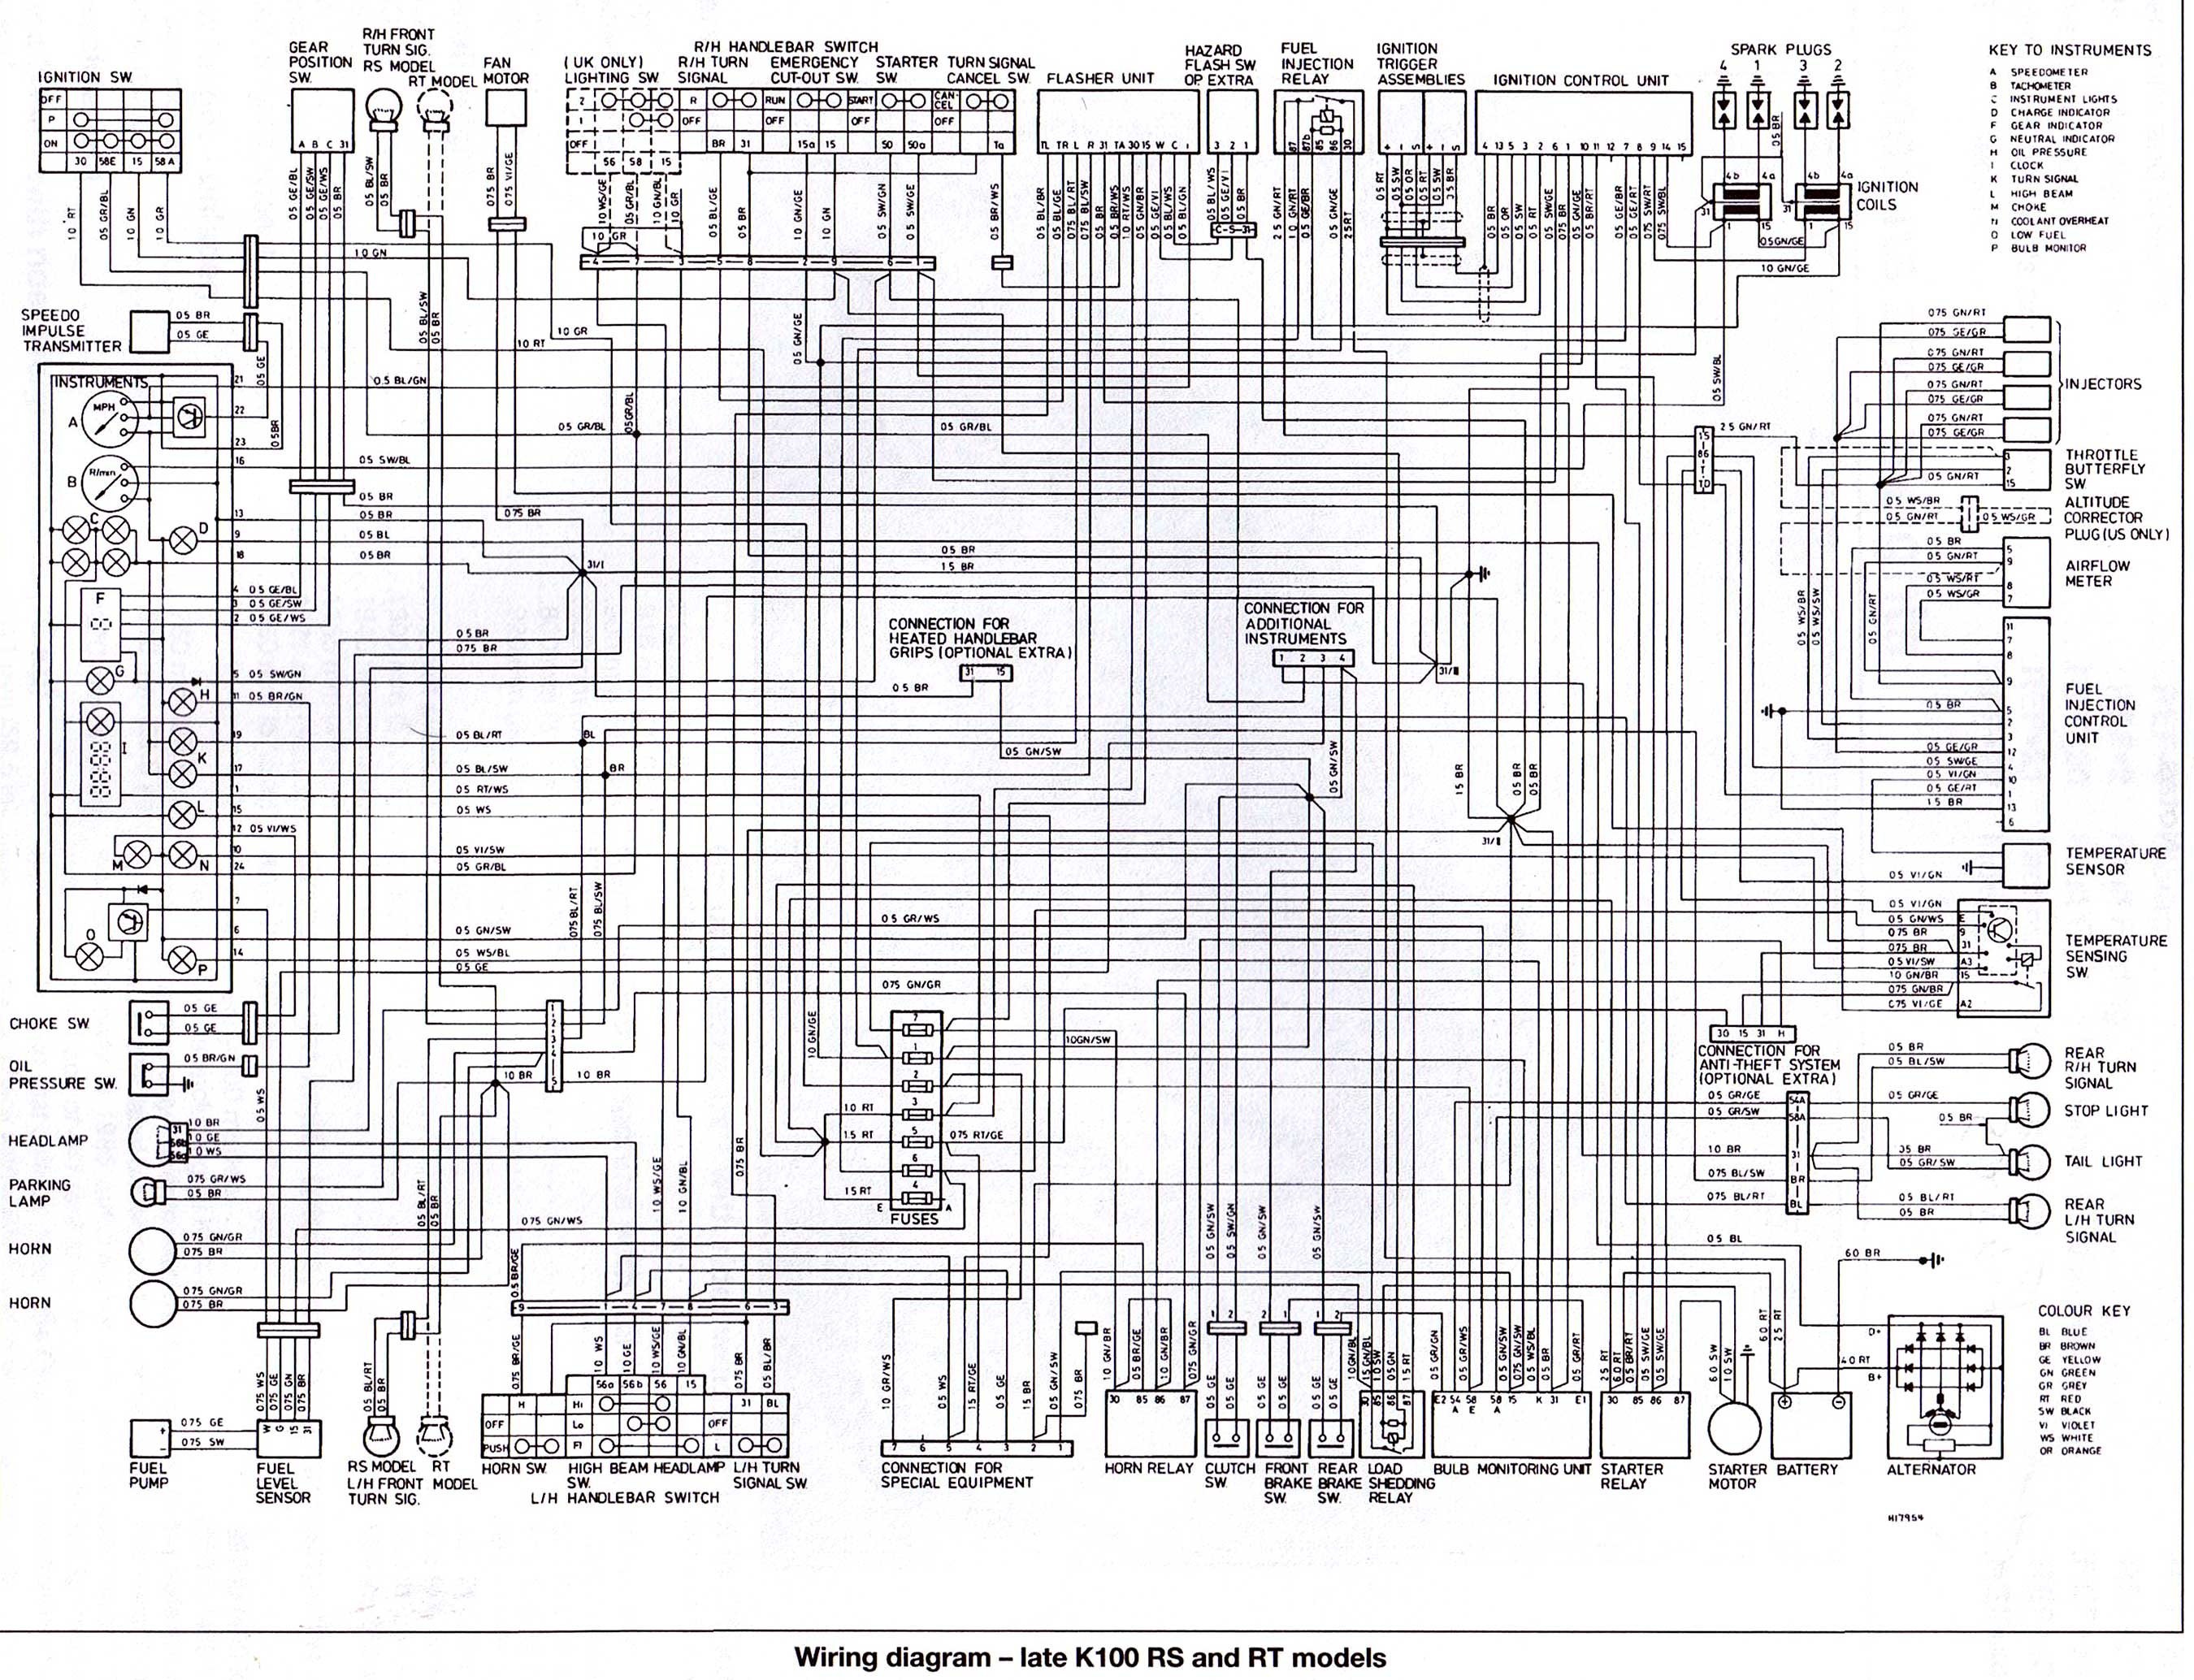 Wiring Diagrams 1985 Bmw K100 - Free Download Wiring Diagram